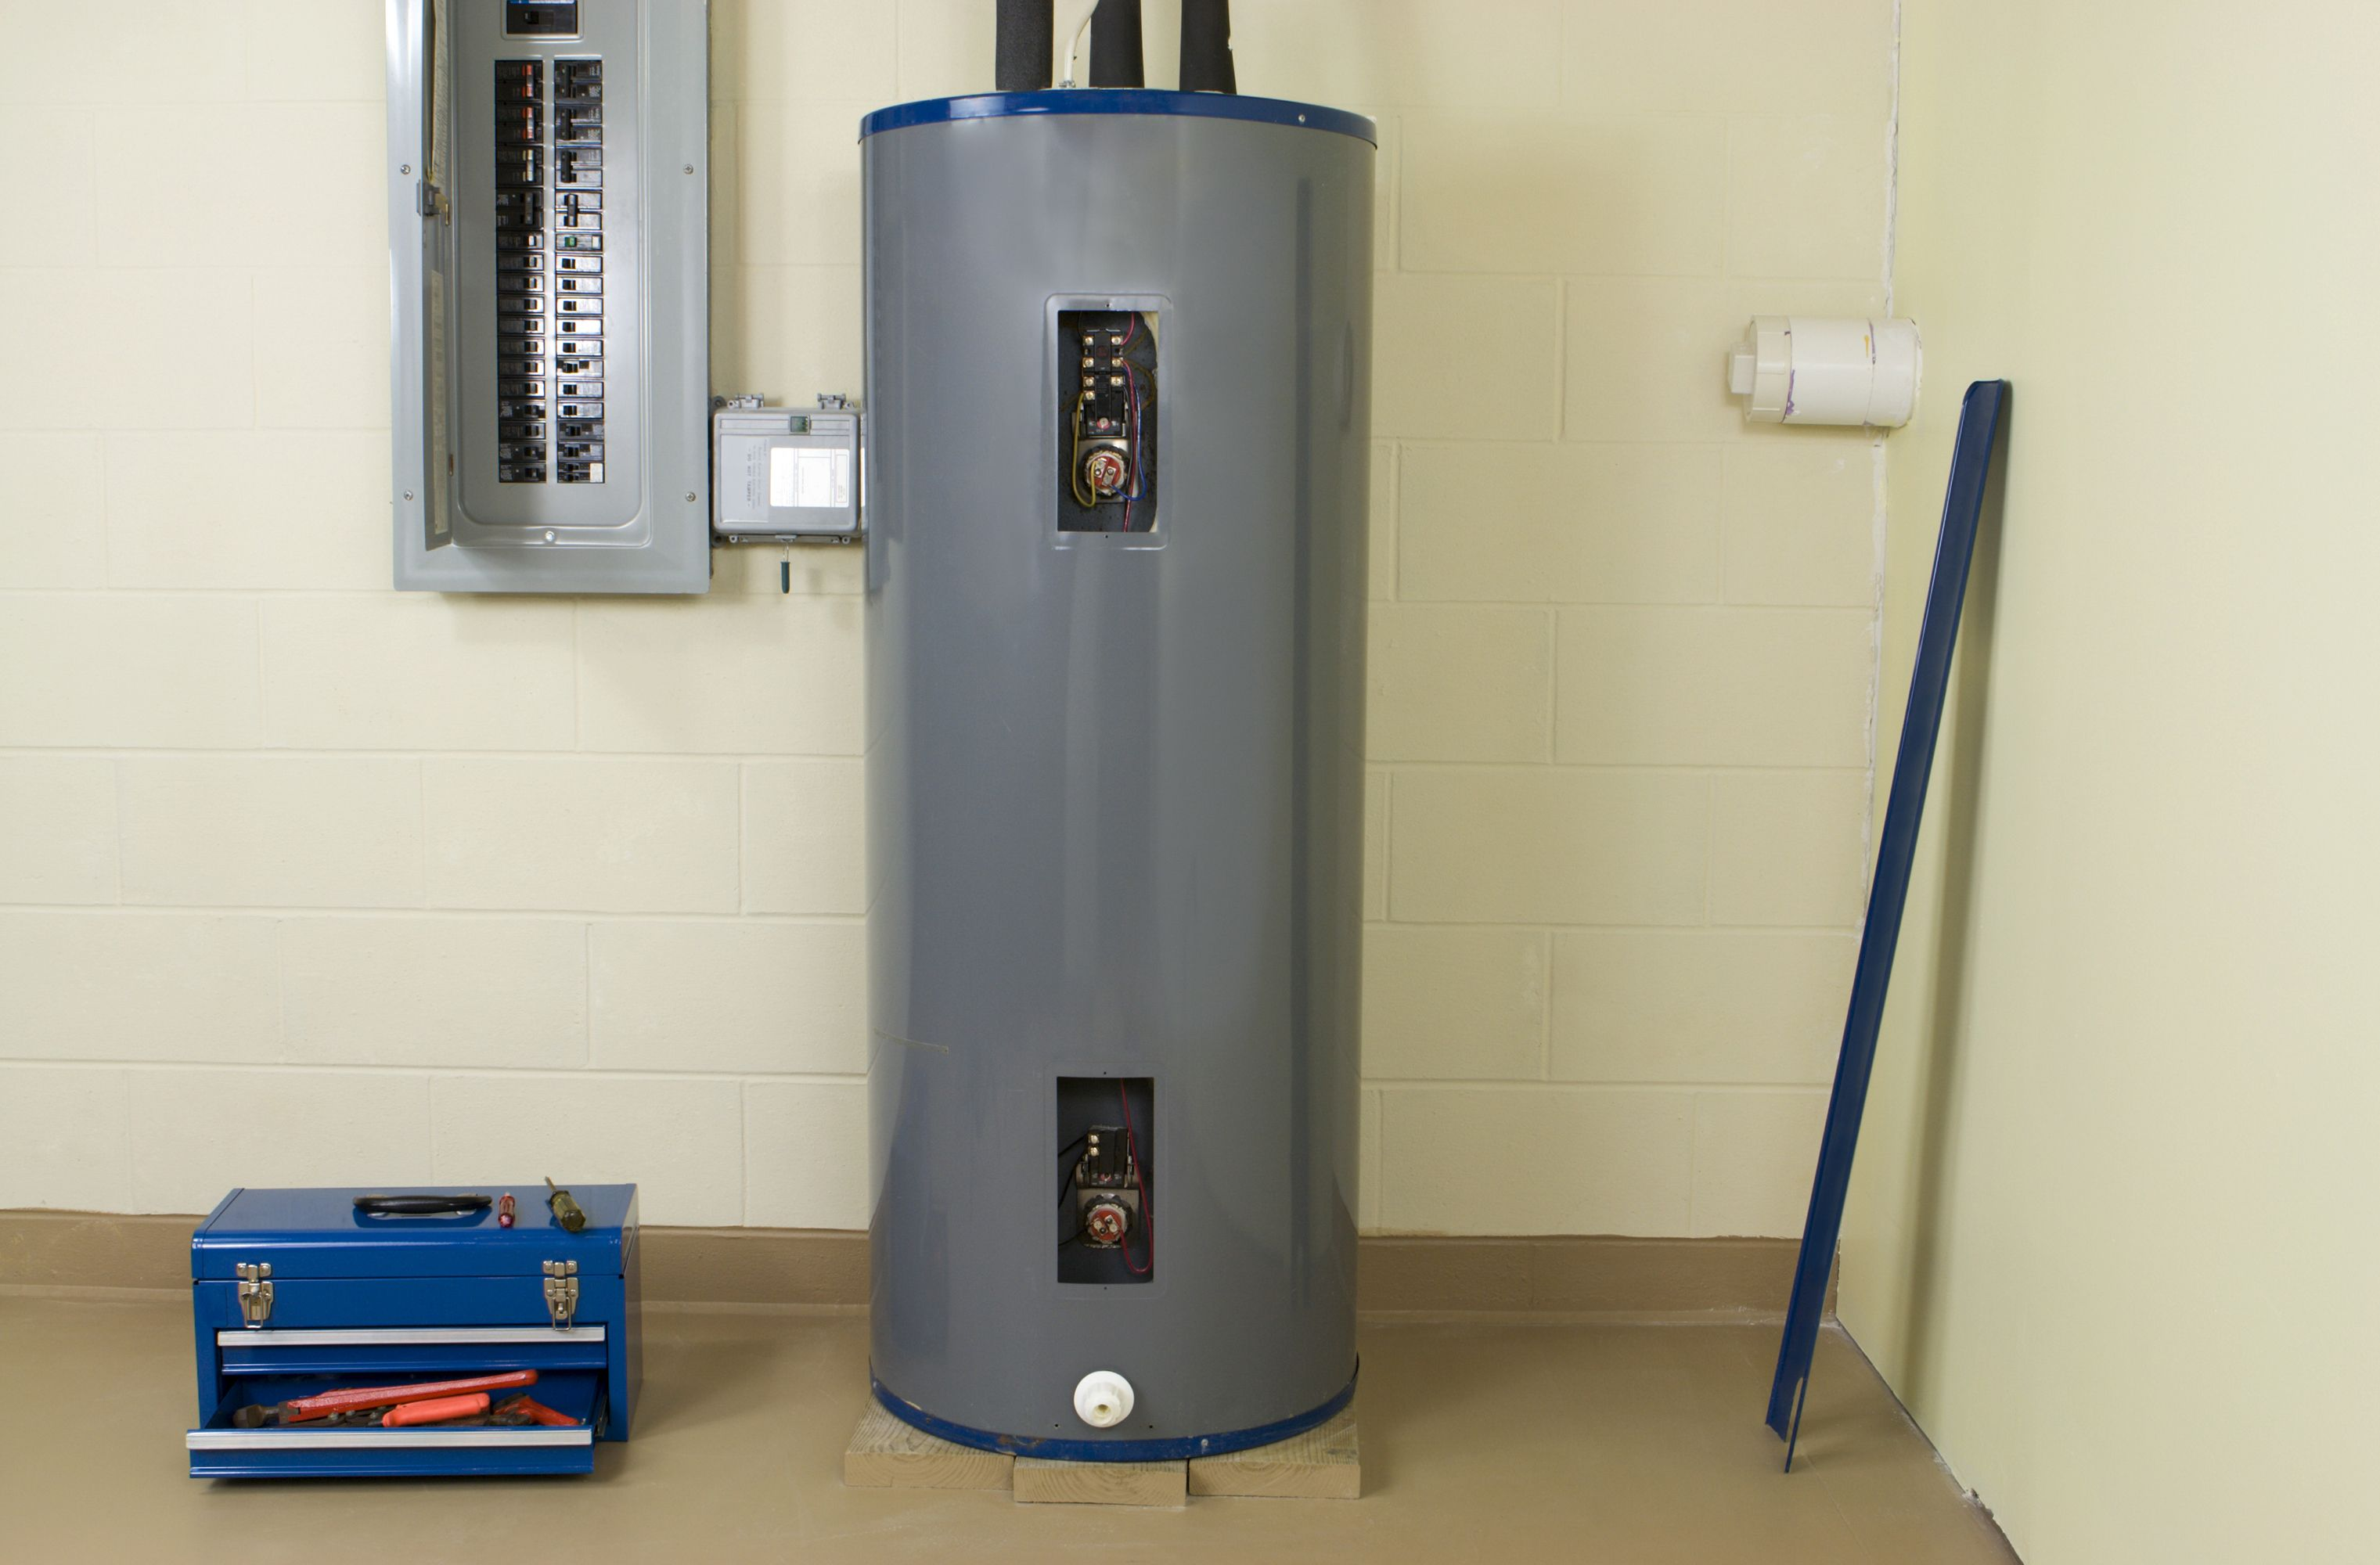 Electric Hot Water Heaters - How to Install a Water Heater